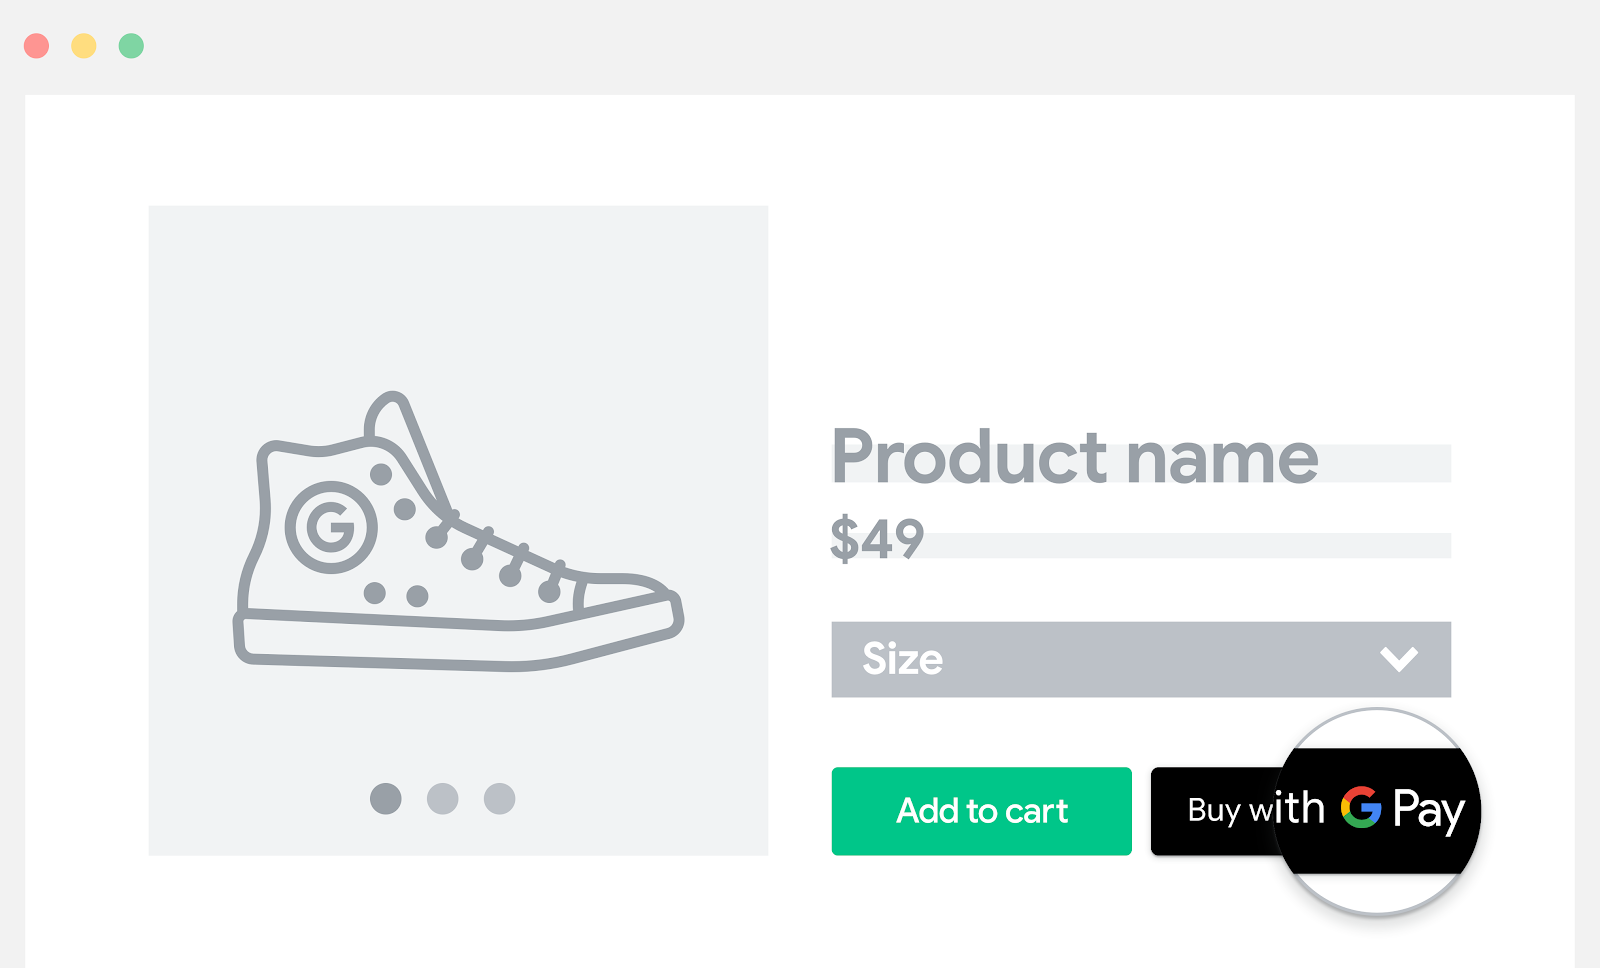 Add Google Pay to the product page.